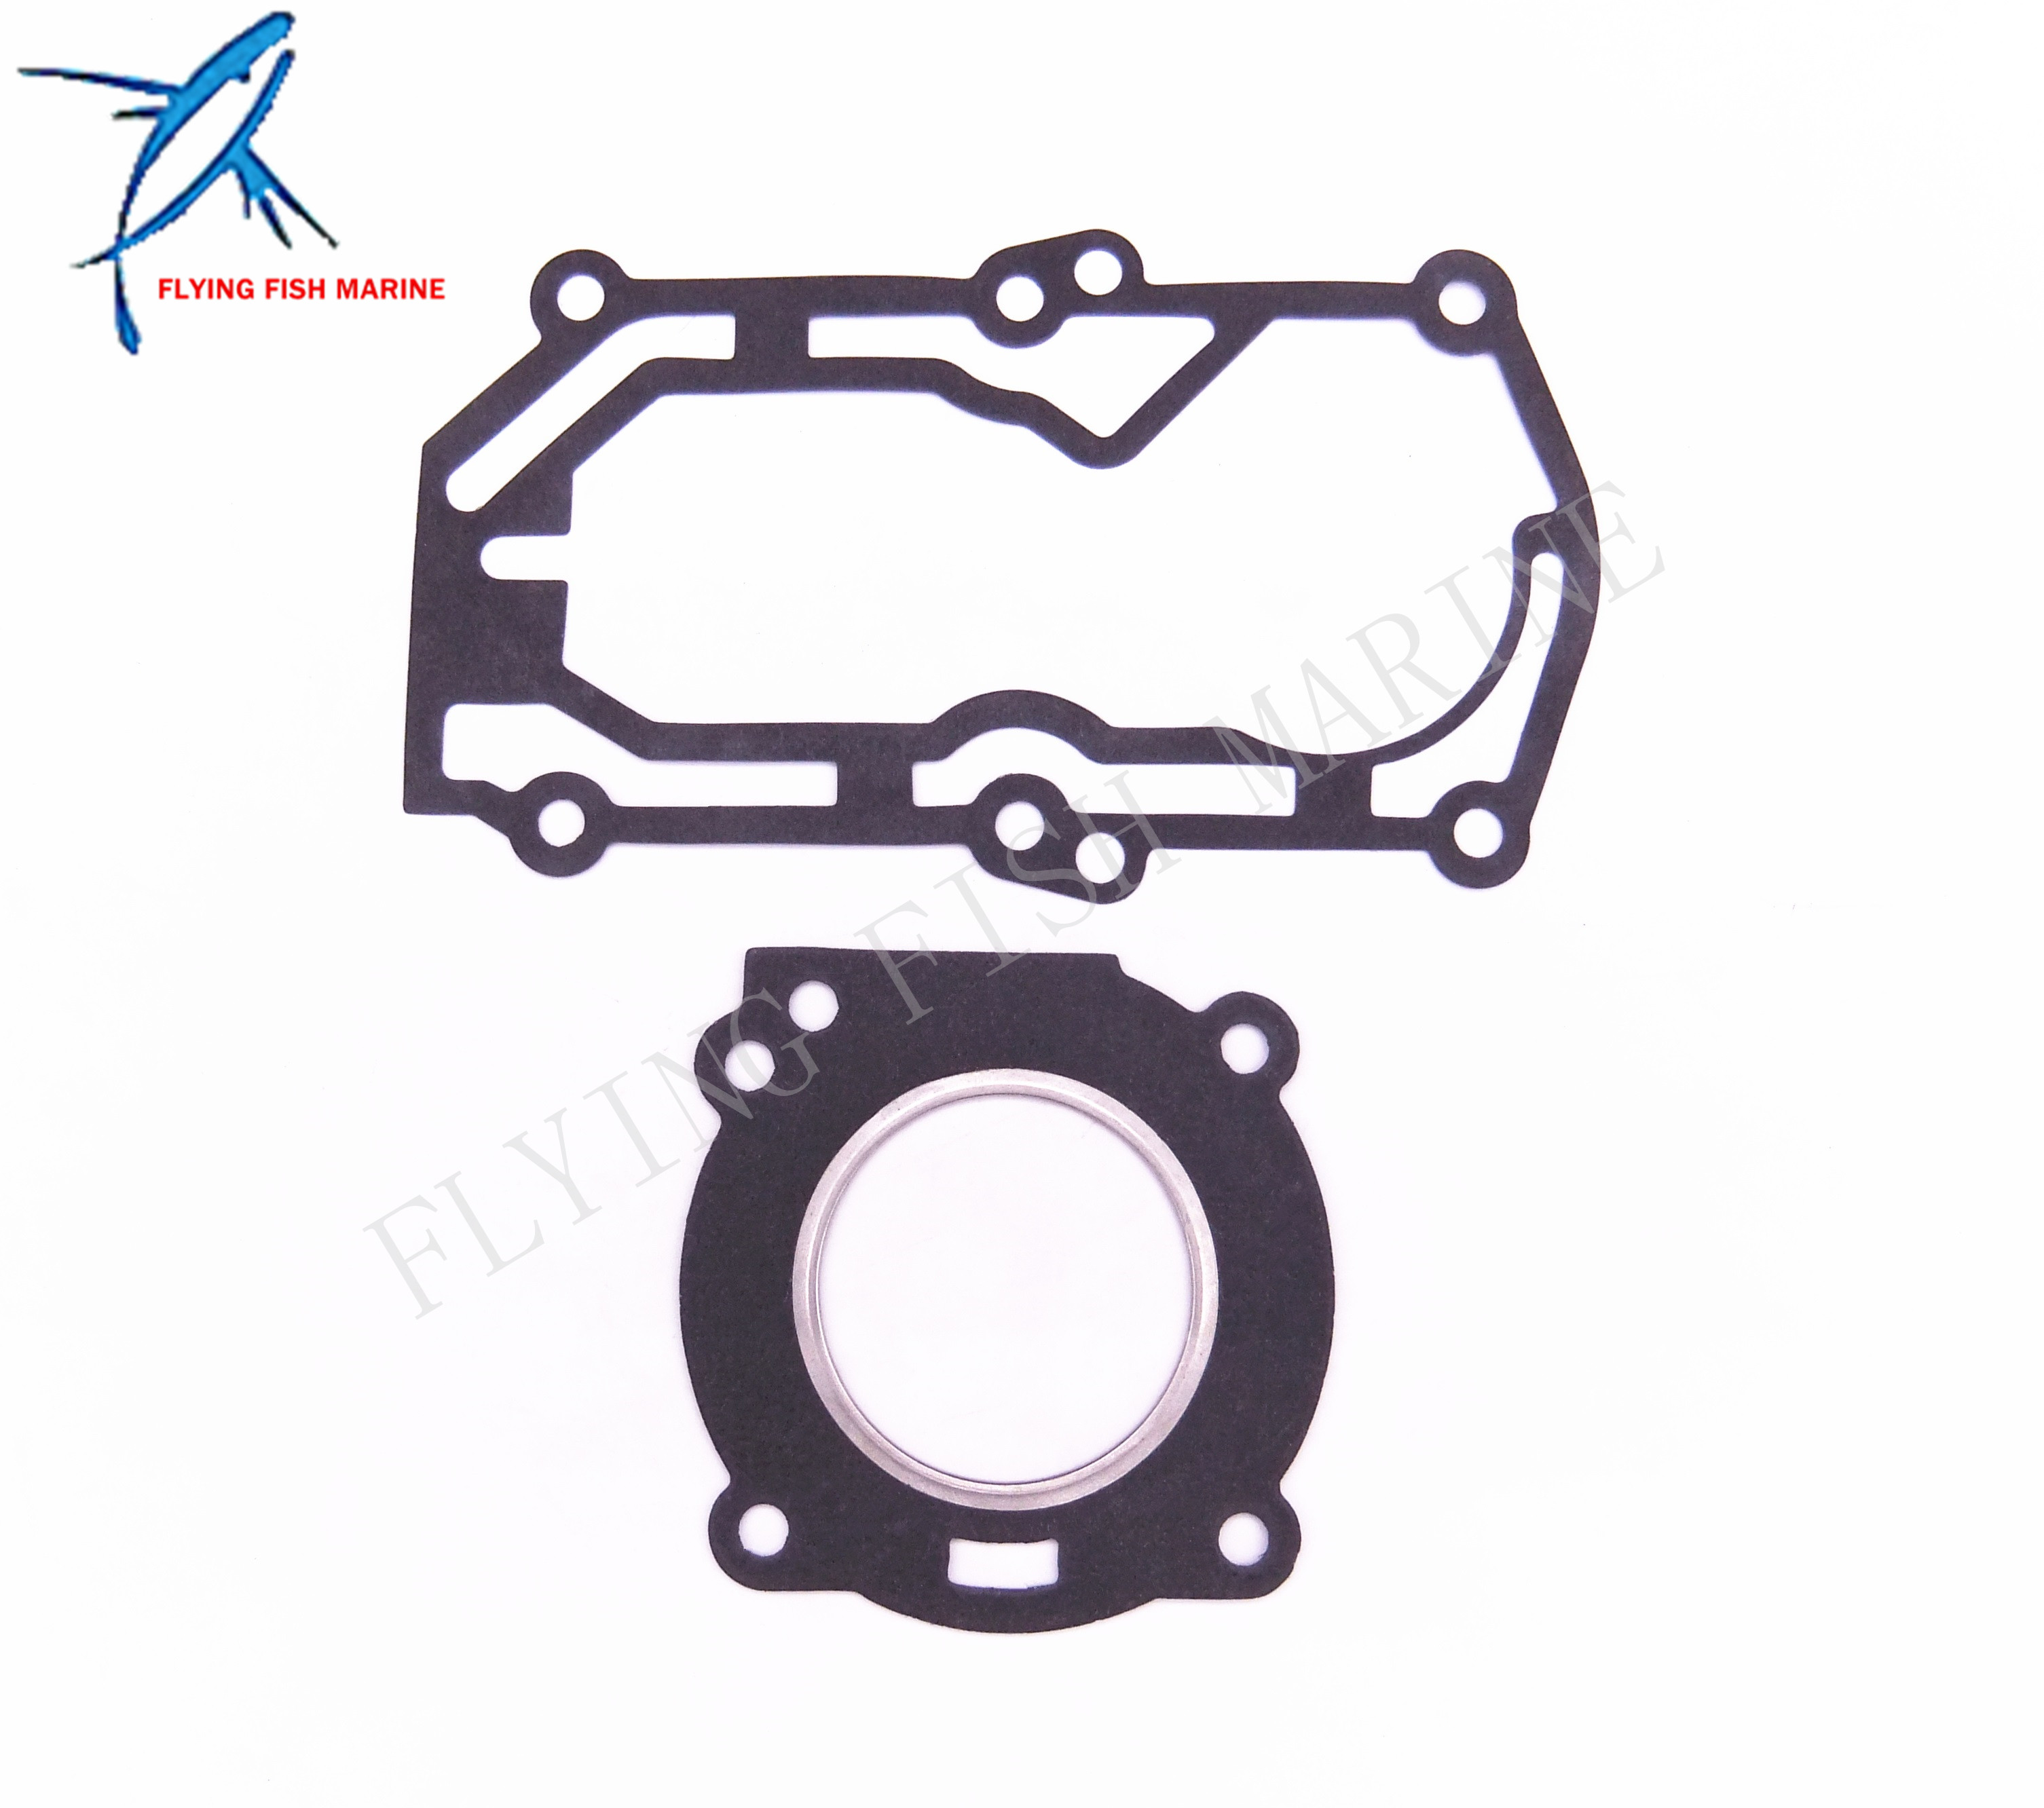 Outboard Engine Complete Power Head Seal Gasket Kit for Parsun 2 Stroke T2 5 T3 6